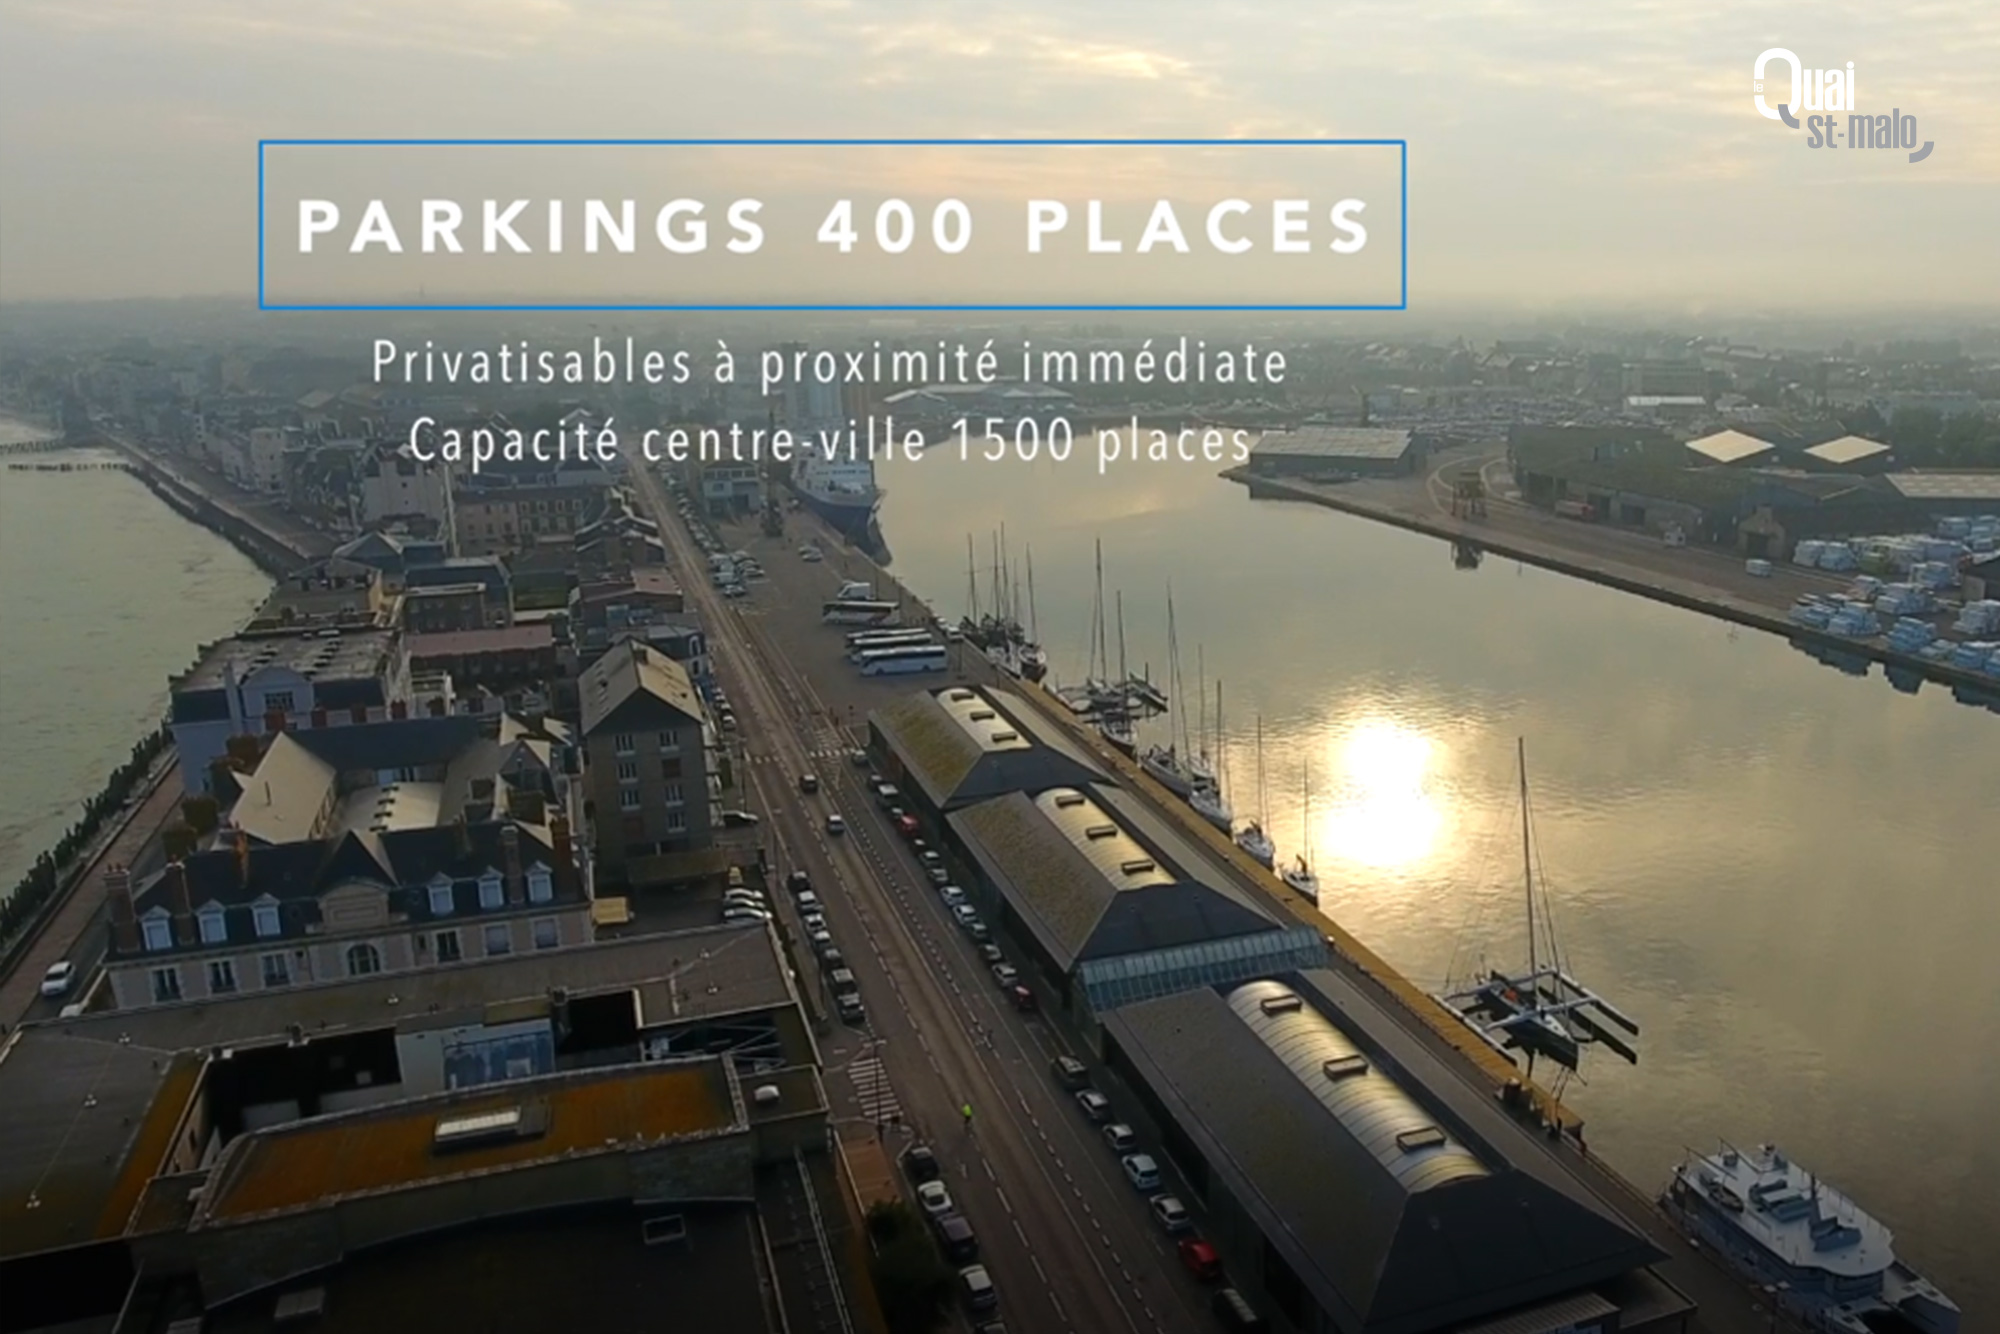 Parking 400 places